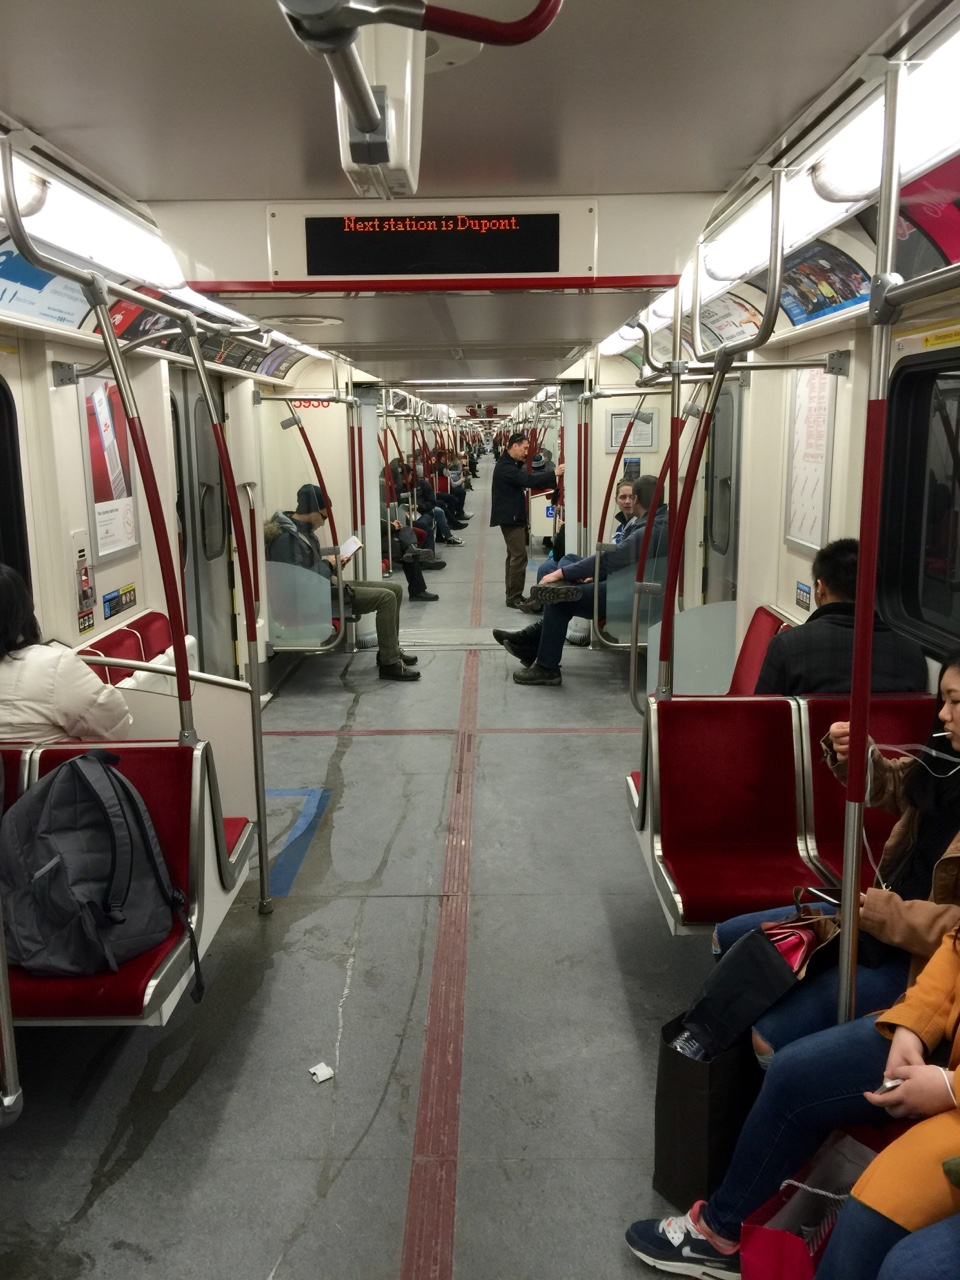 Toronto Subway Line - an eclectic mix of the best and worst that I've seen thus far from public transportation. Efficient, seemingly endless, and with live indicators showing where you are on the route.